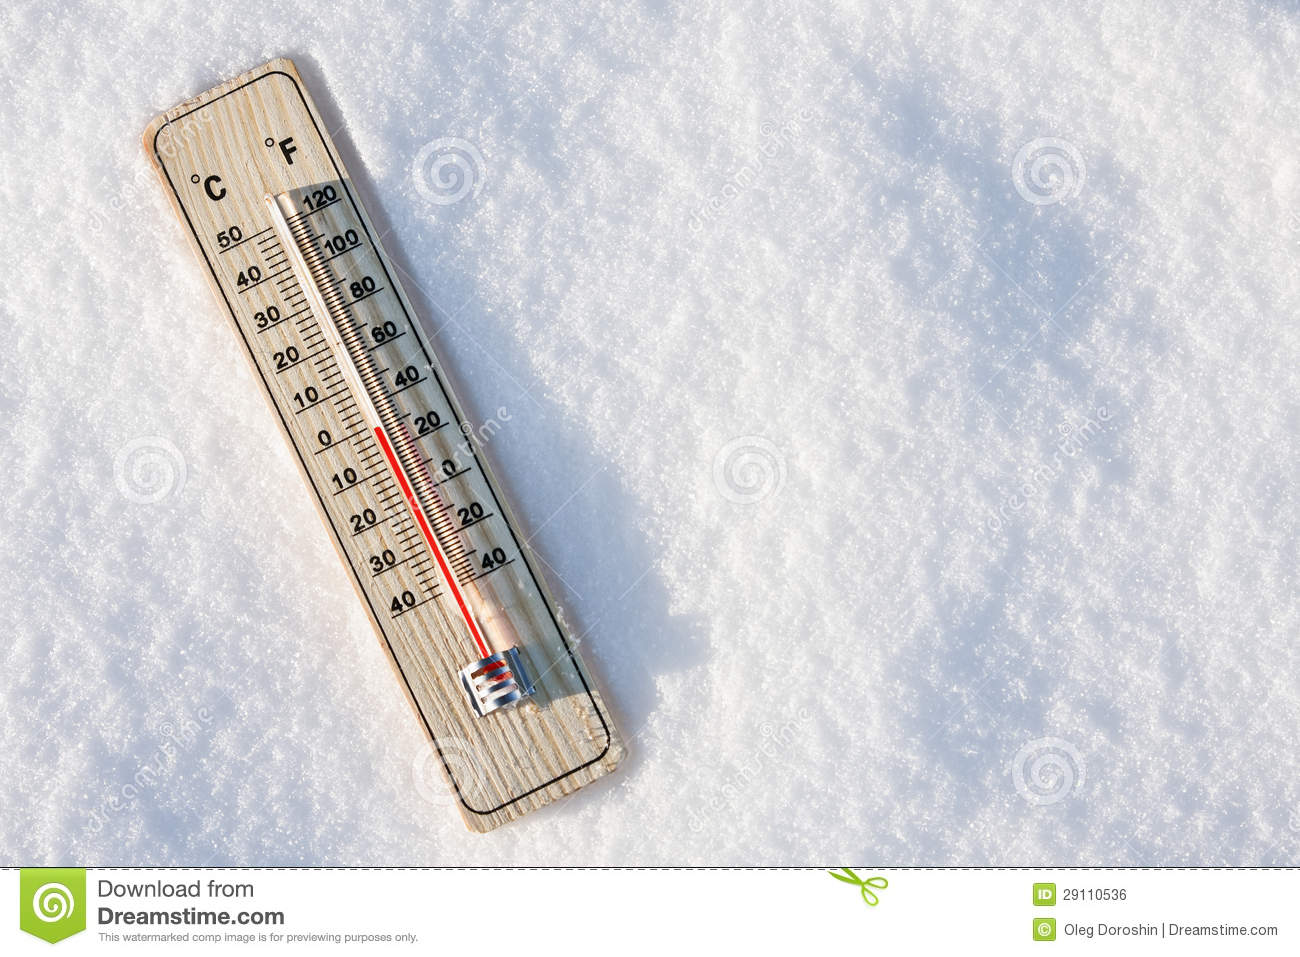 Thermometer in the snow with zero temperature